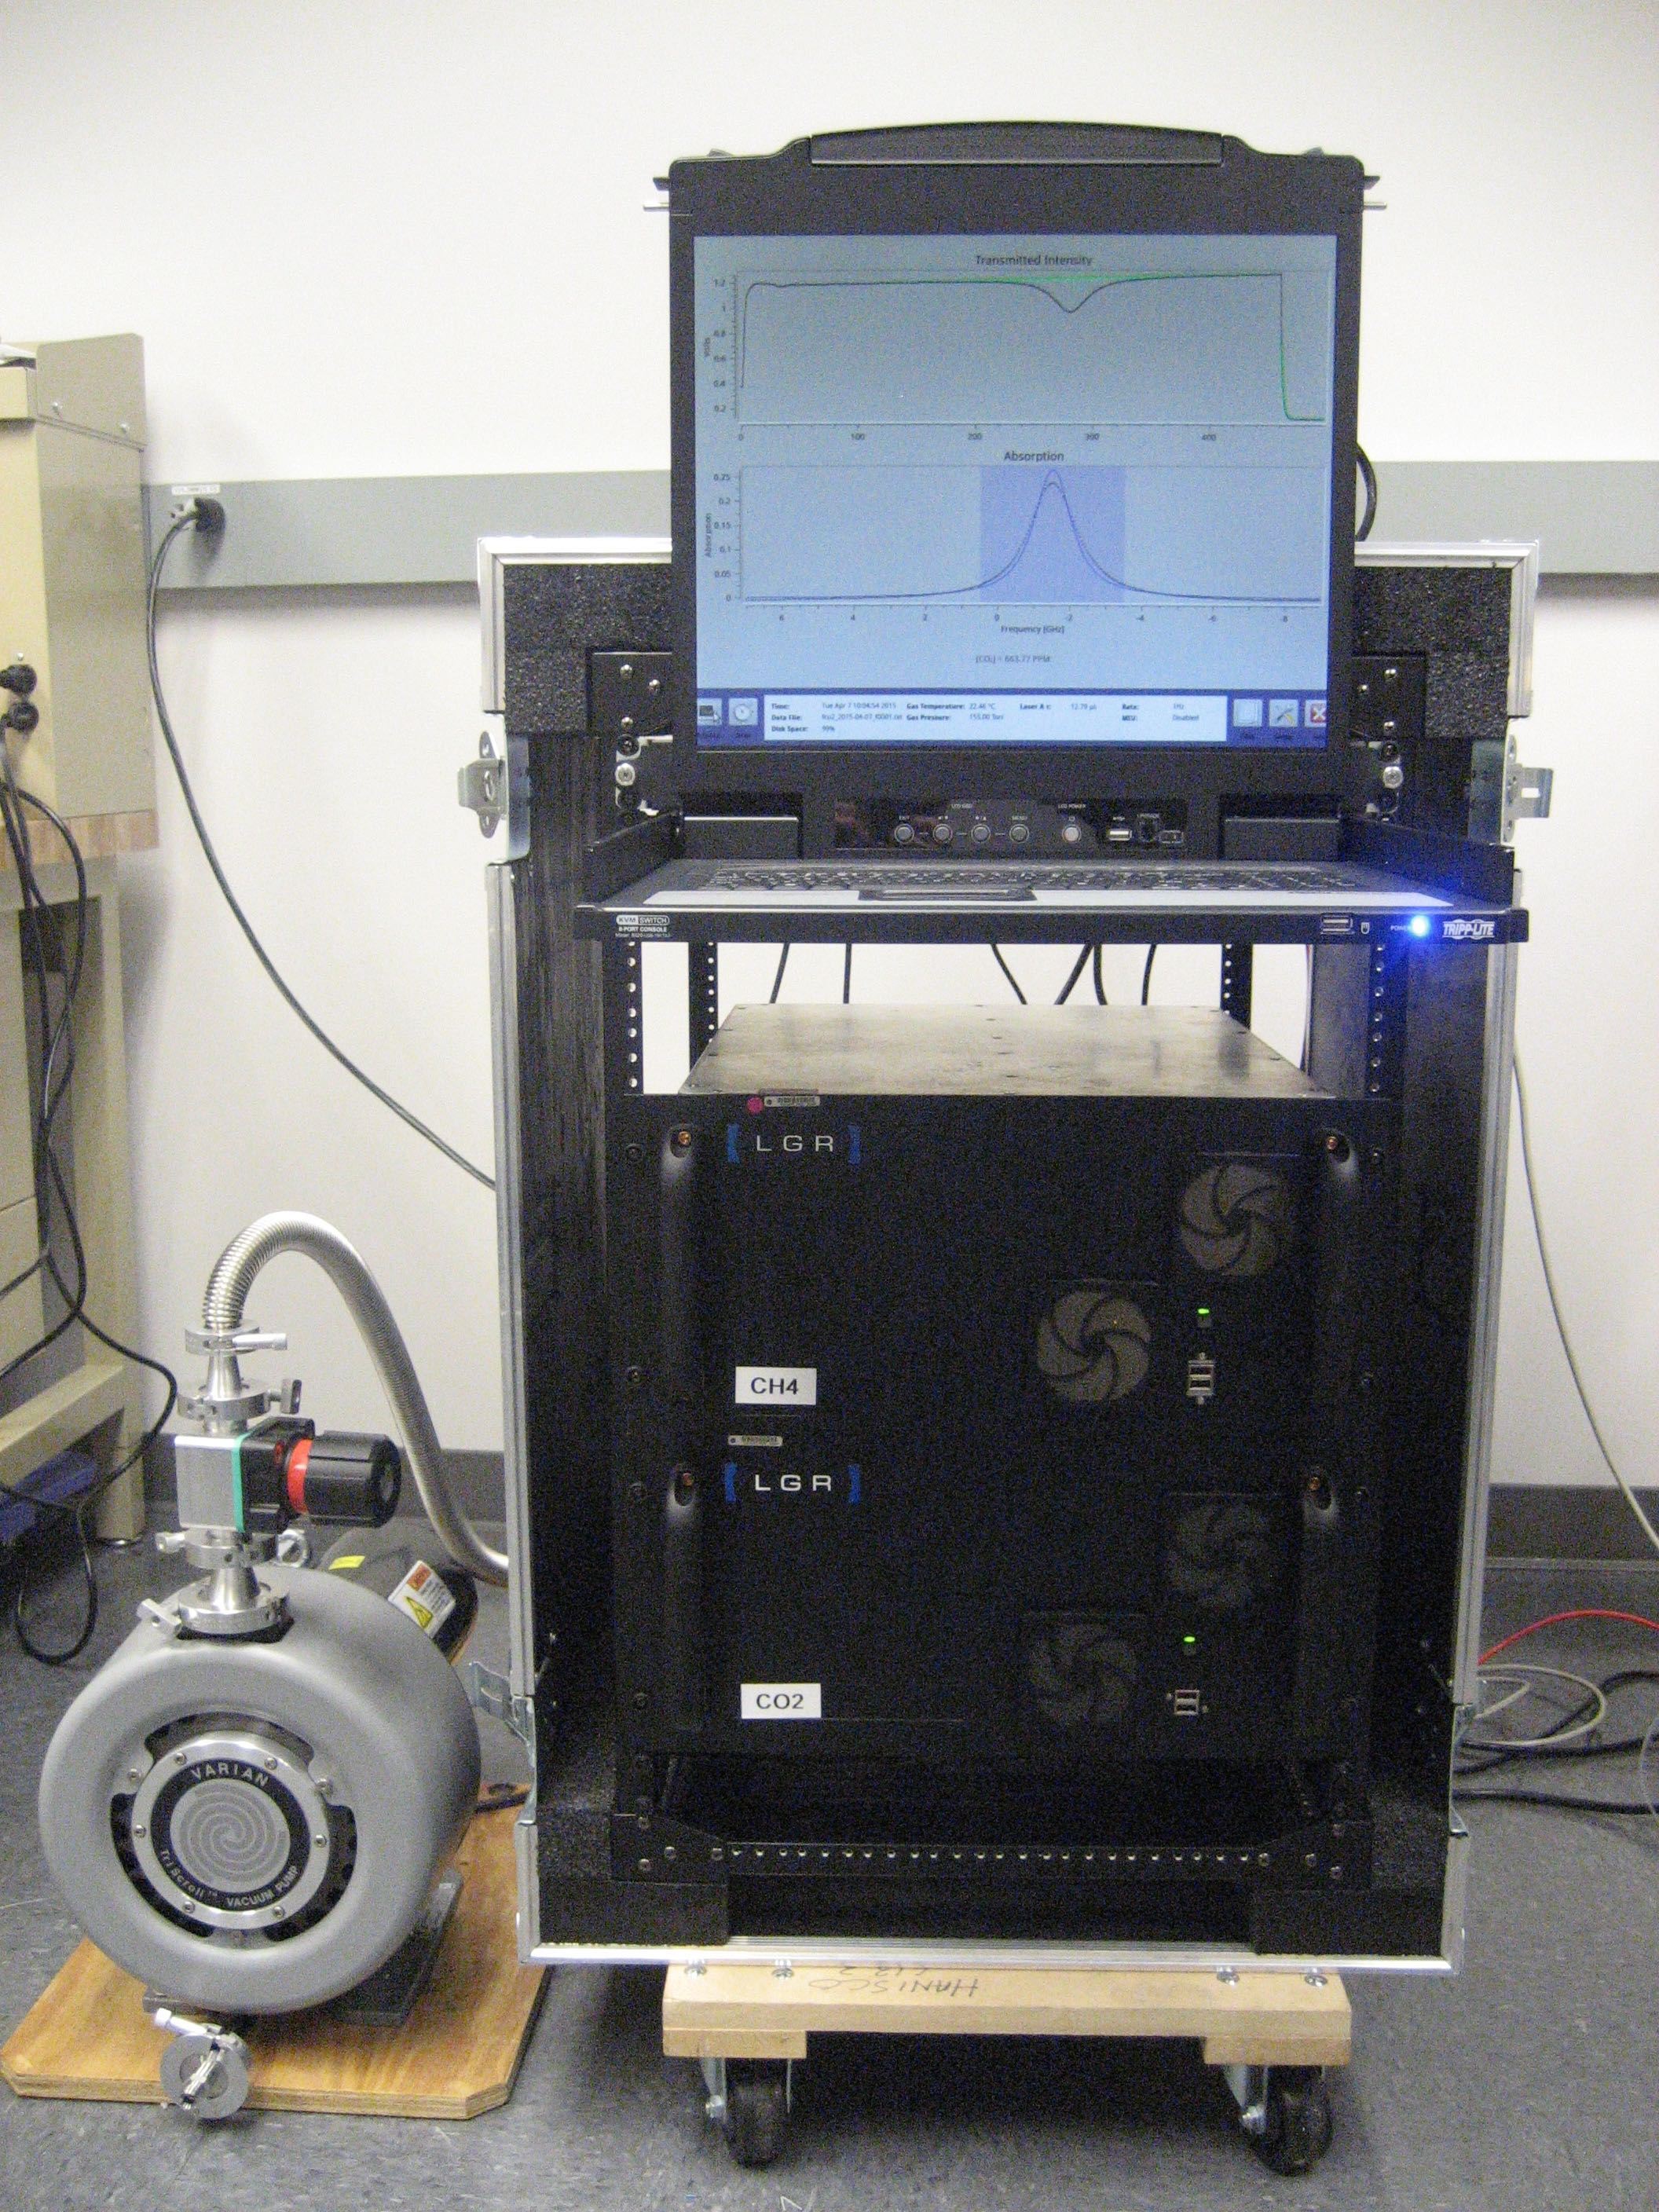 The flux instrumentation includes two modified commercial instruments and a fast data acquisition system.  The greenhouse gas measurement package is joined with measurements of 3D winds and aircraft flight data on a central data acquisition computer.